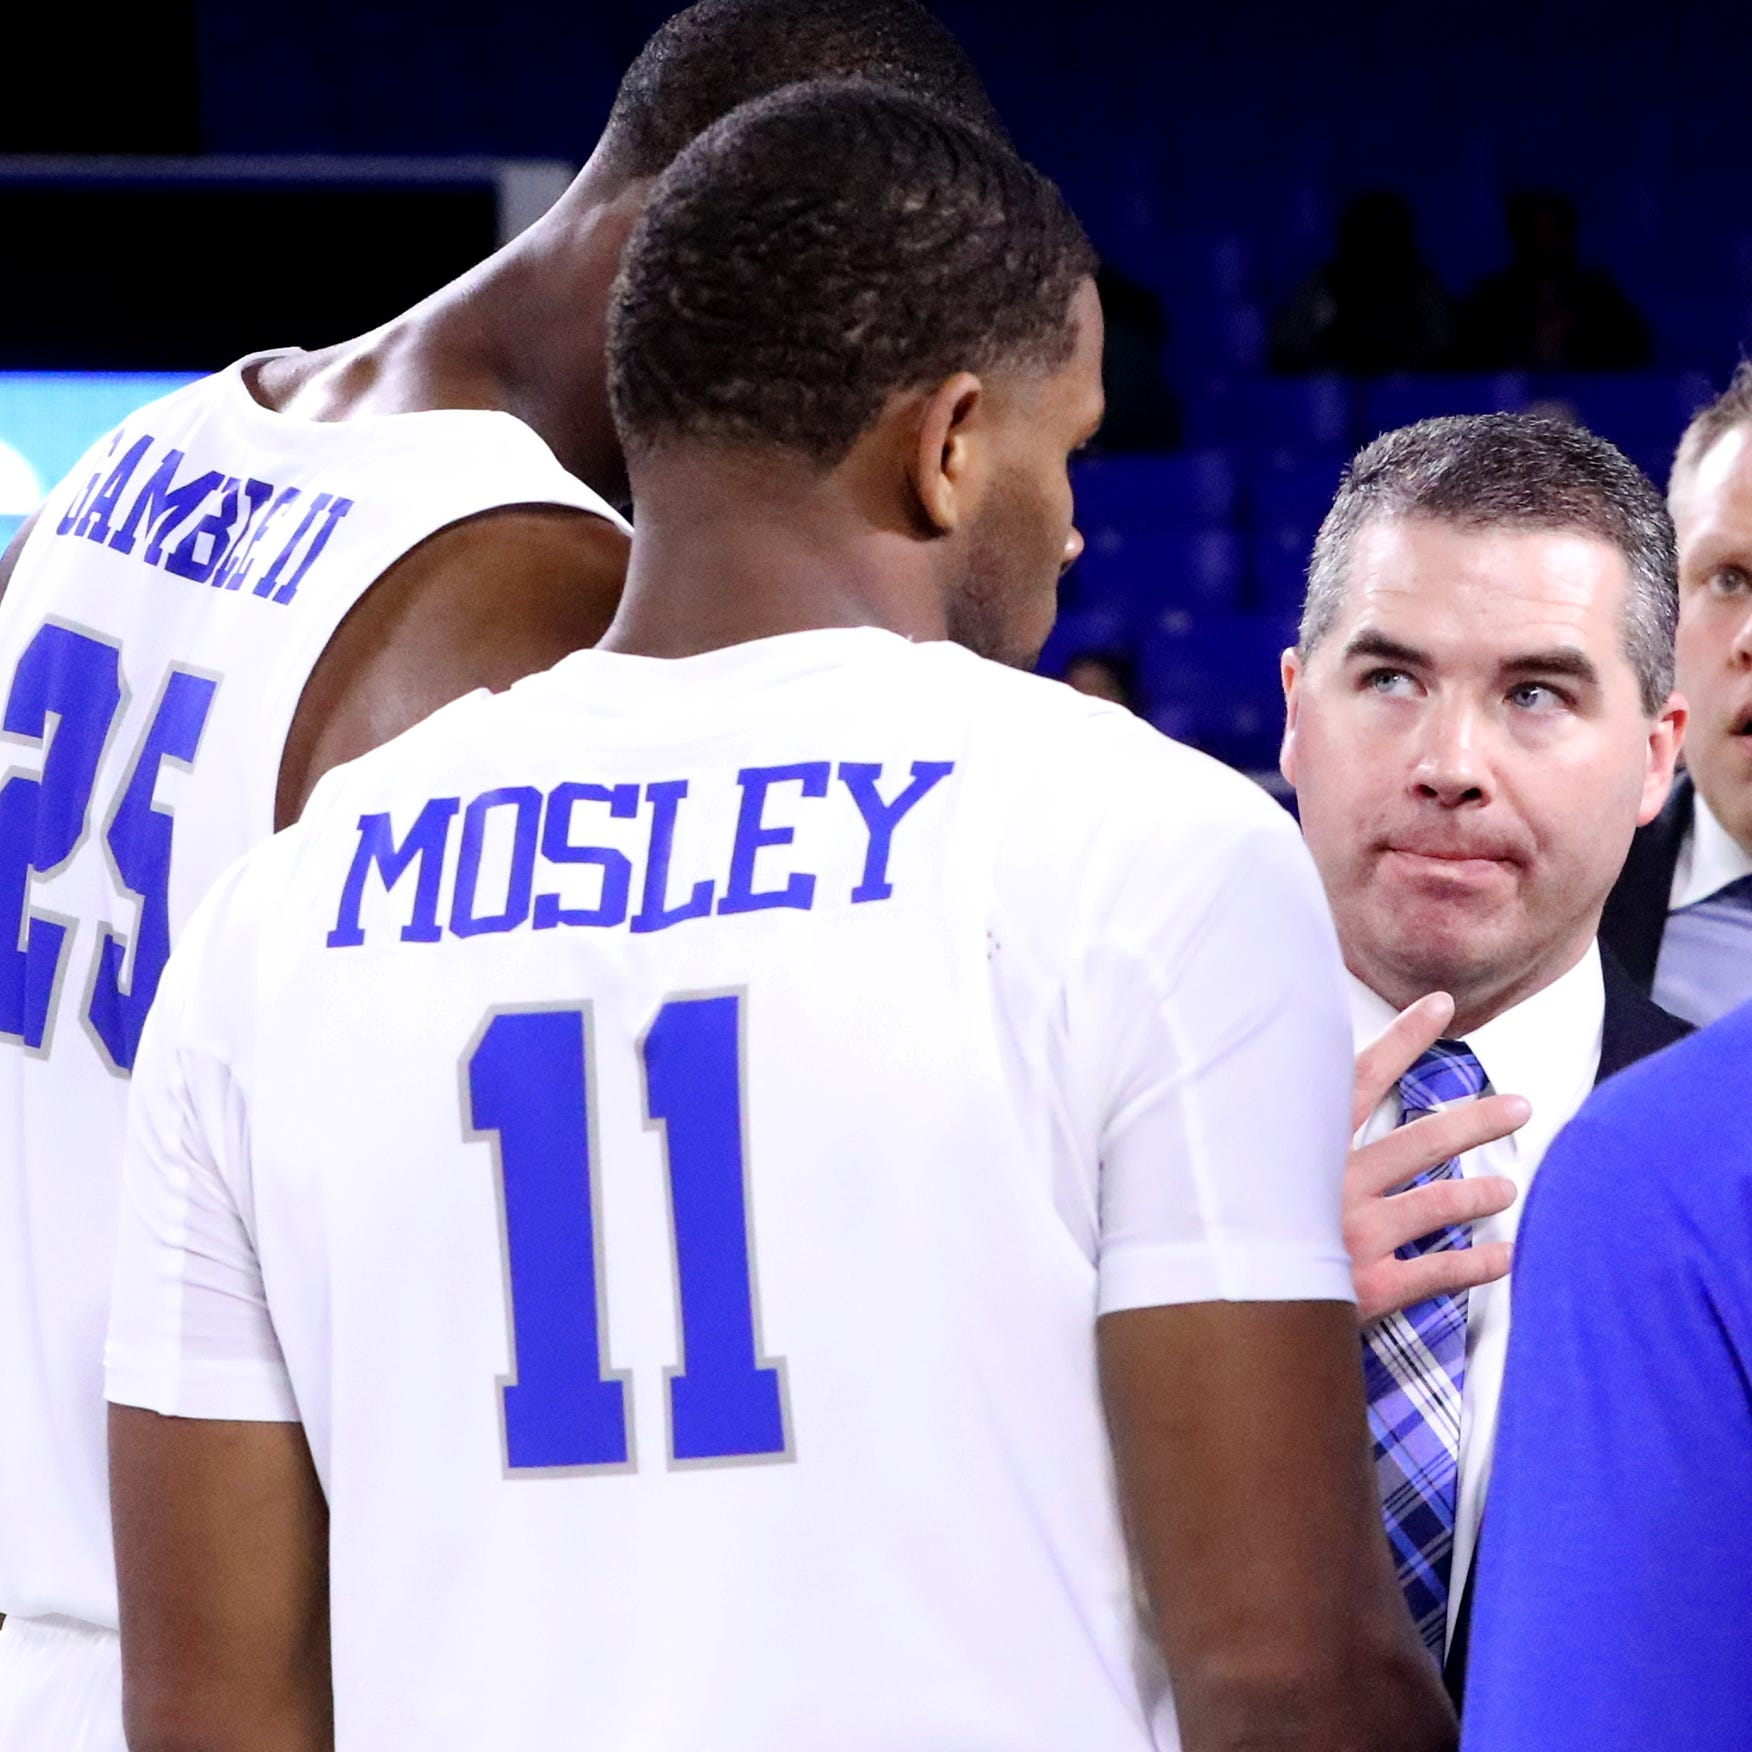 Turnovers continue to be an issue for MTSU basketball in loss to Murray State